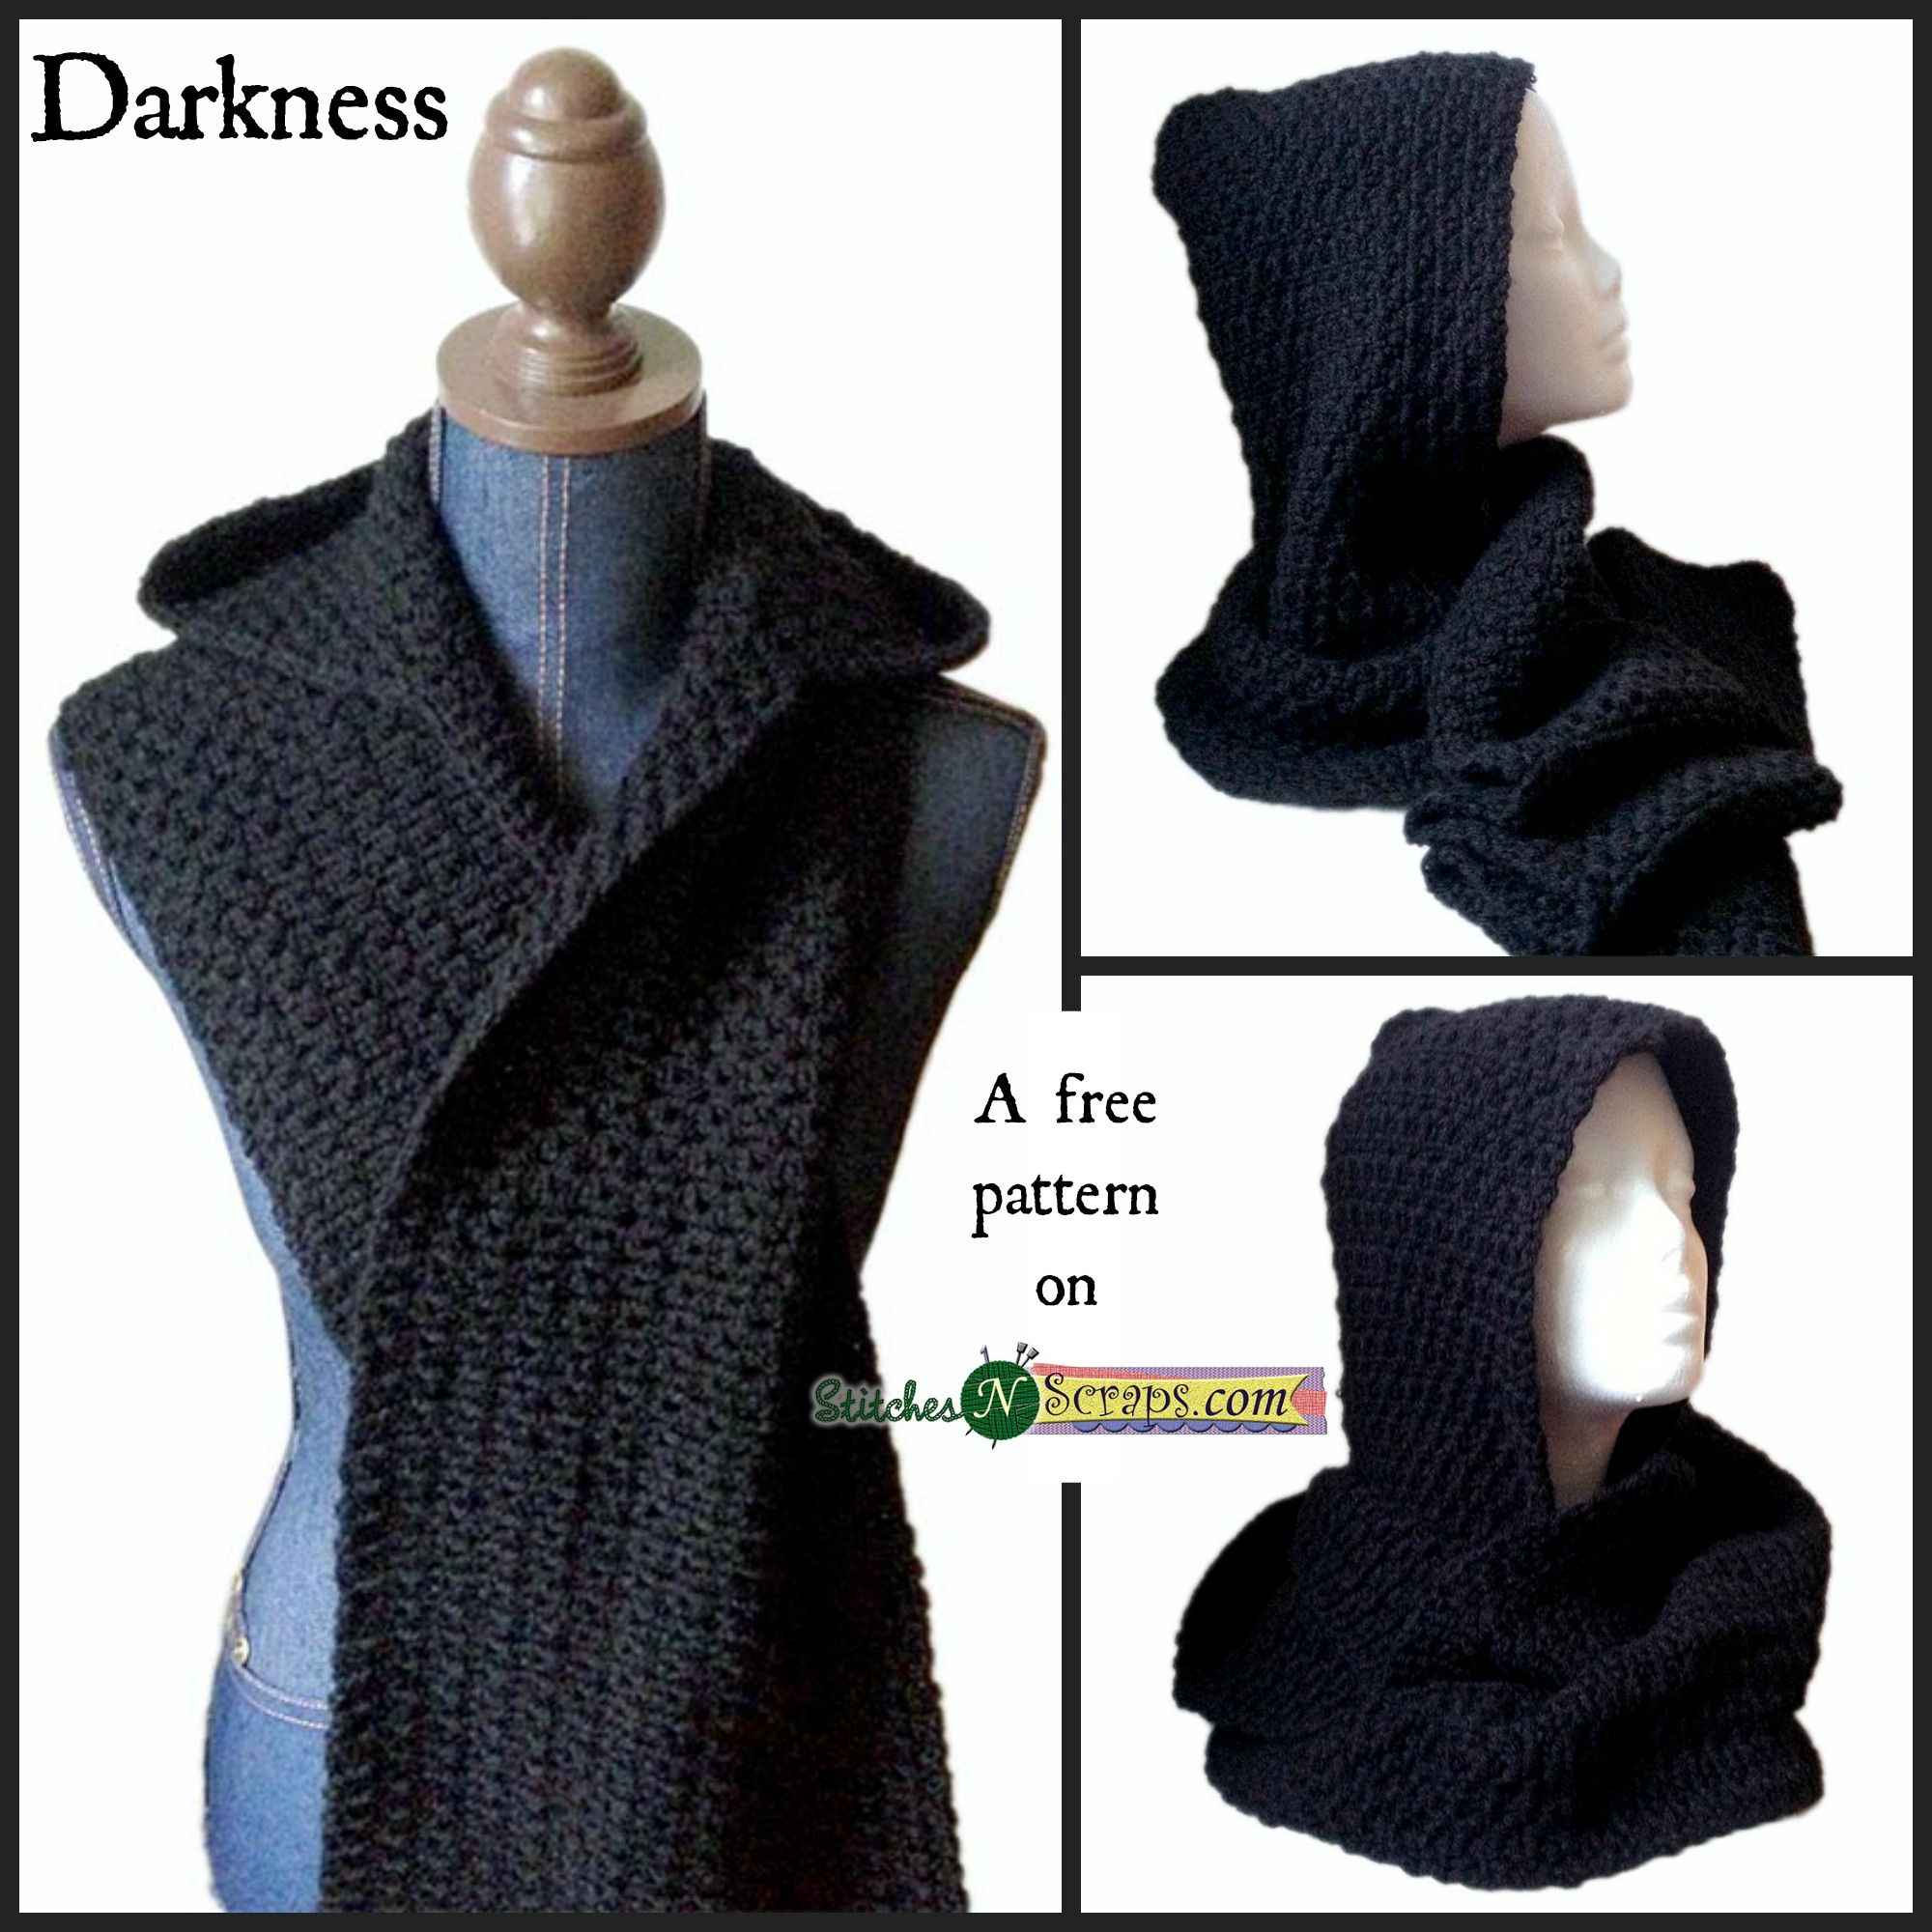 Free Pattern - Darkness | Pinterest | Hooded scarf pattern, Crochet ...